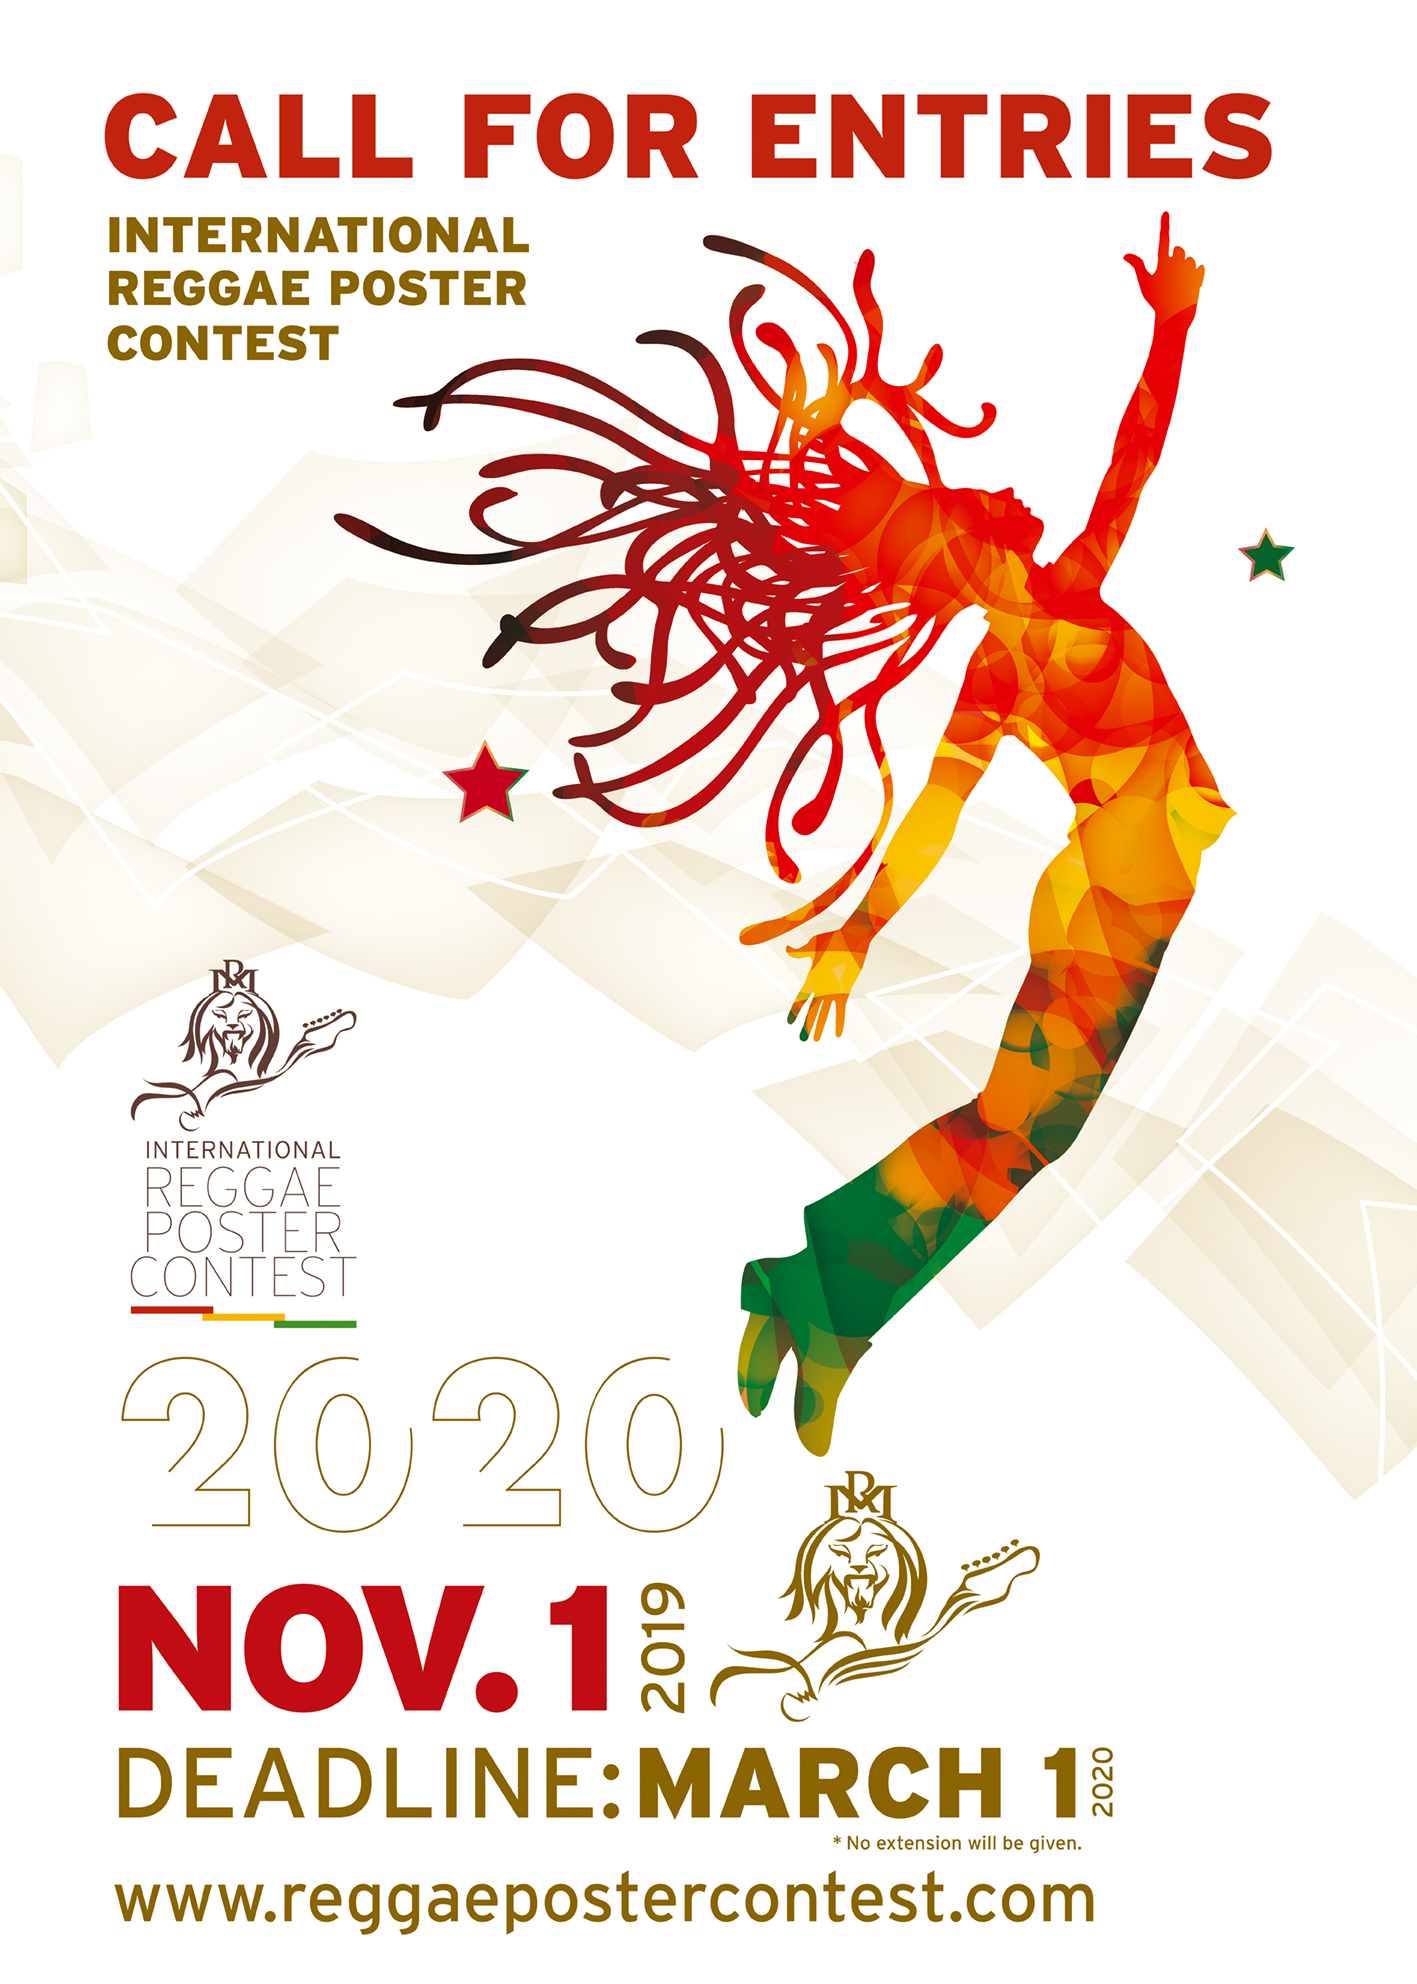 The International Reggae Poster Contest announces its 7th